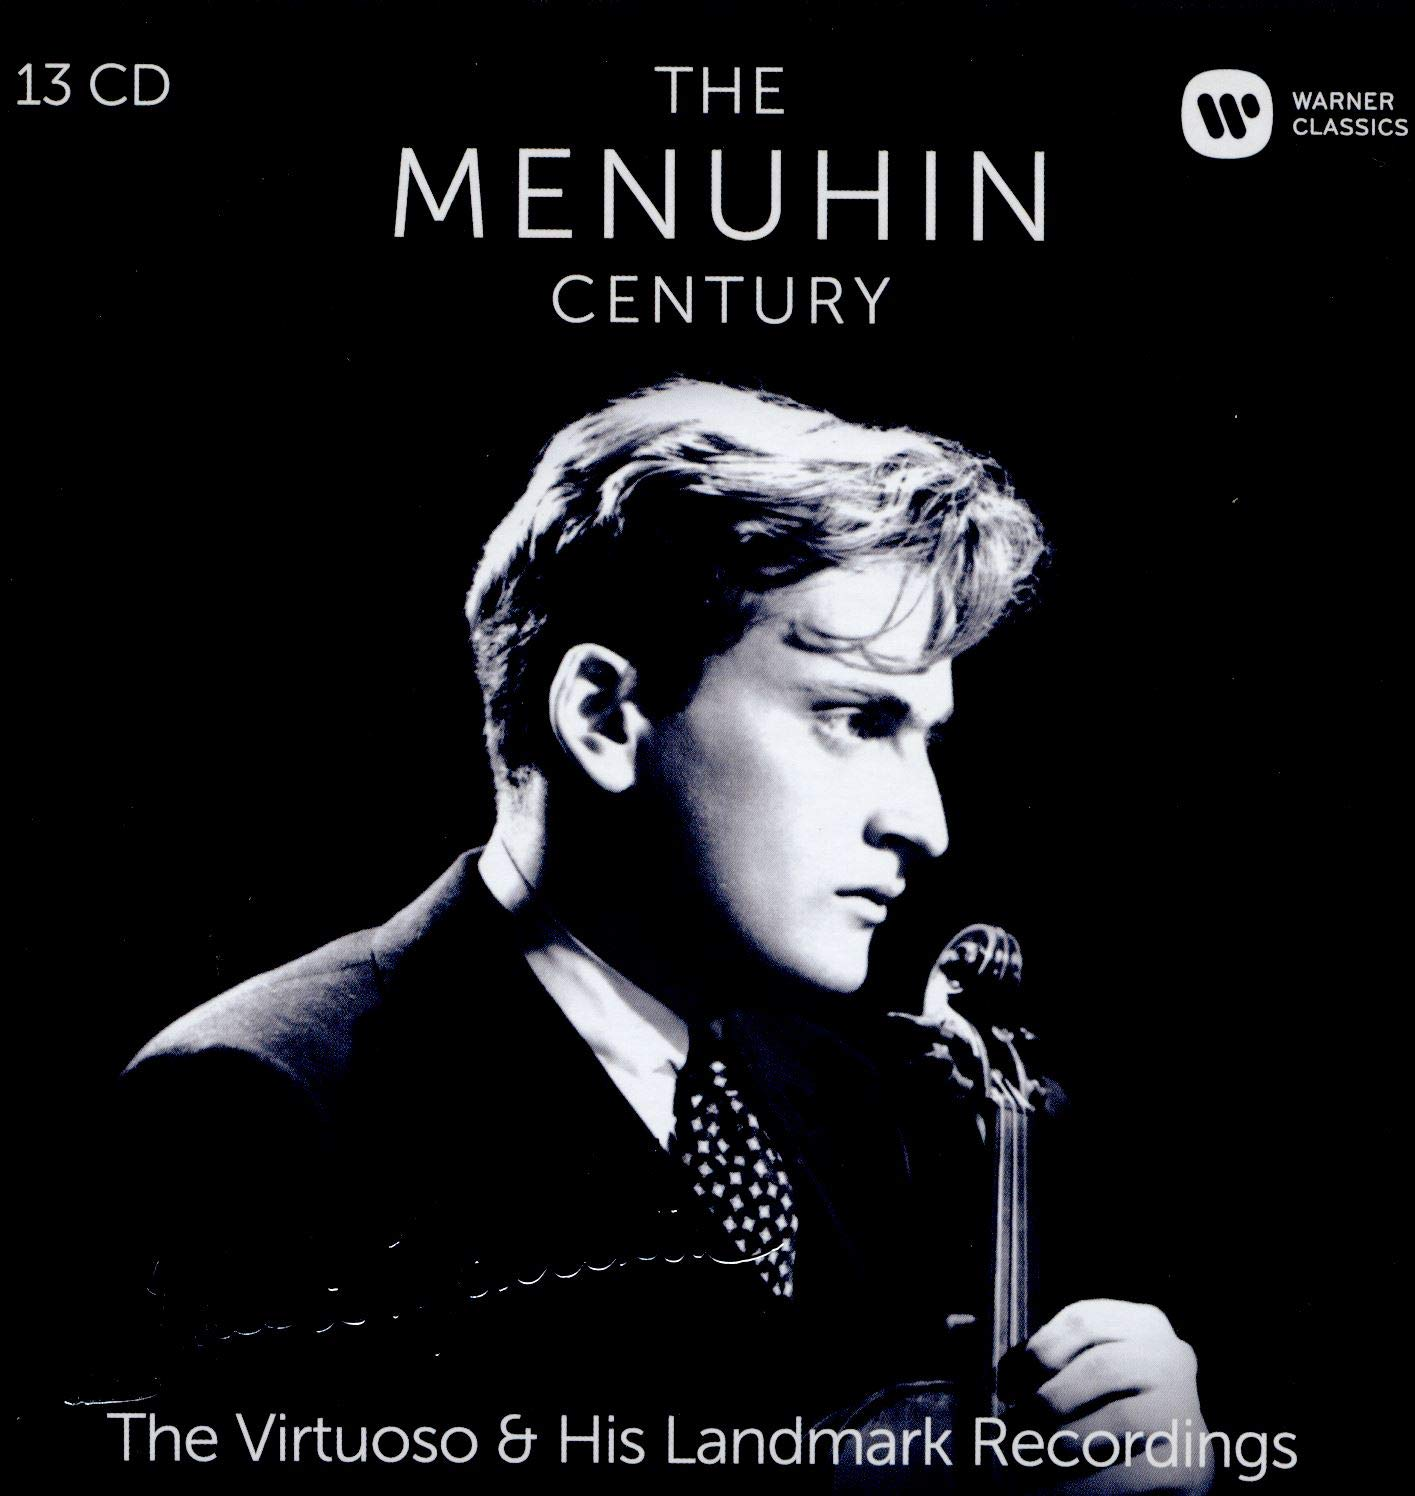 Yehudi Menuhin The Menuhin Century The Virtuoso His Landmark Recordings 13cd Music